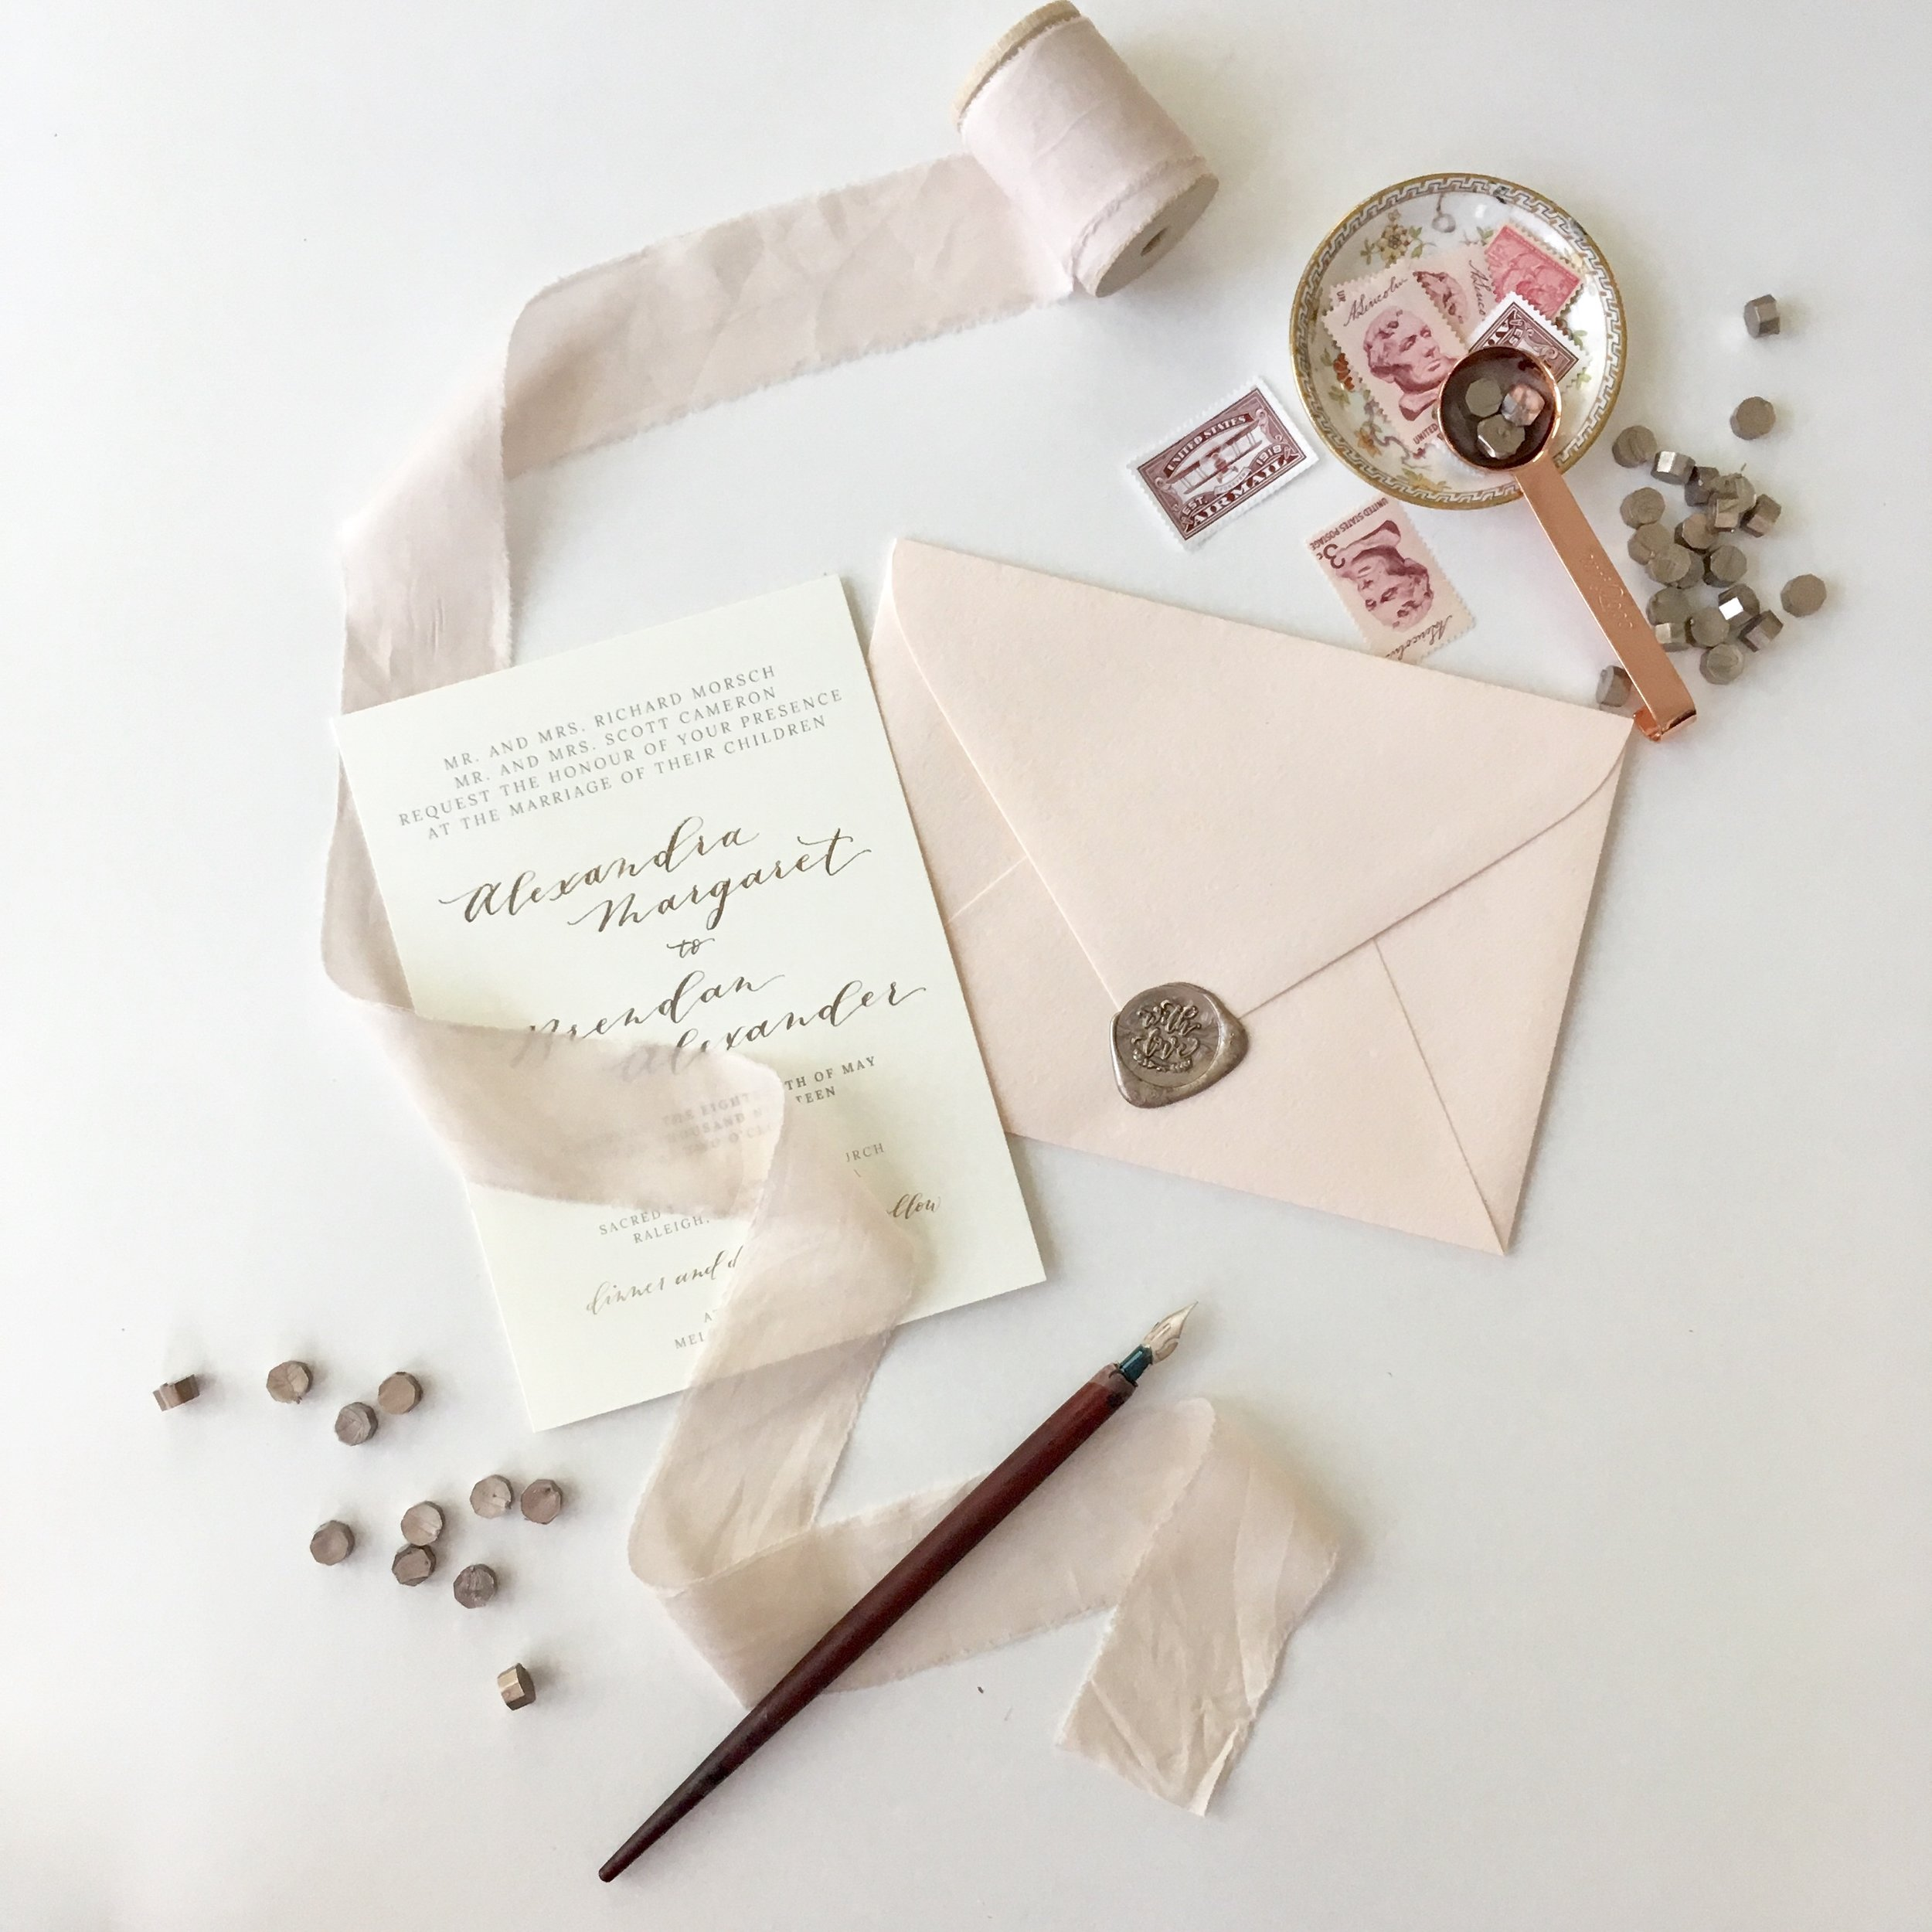 Pictured: Champagne Gold Wax Beads by Uniqooo, Rose Gold Melting Spoon by Uniqooo, and With Love Wax Seal Stamp by Uniqooo